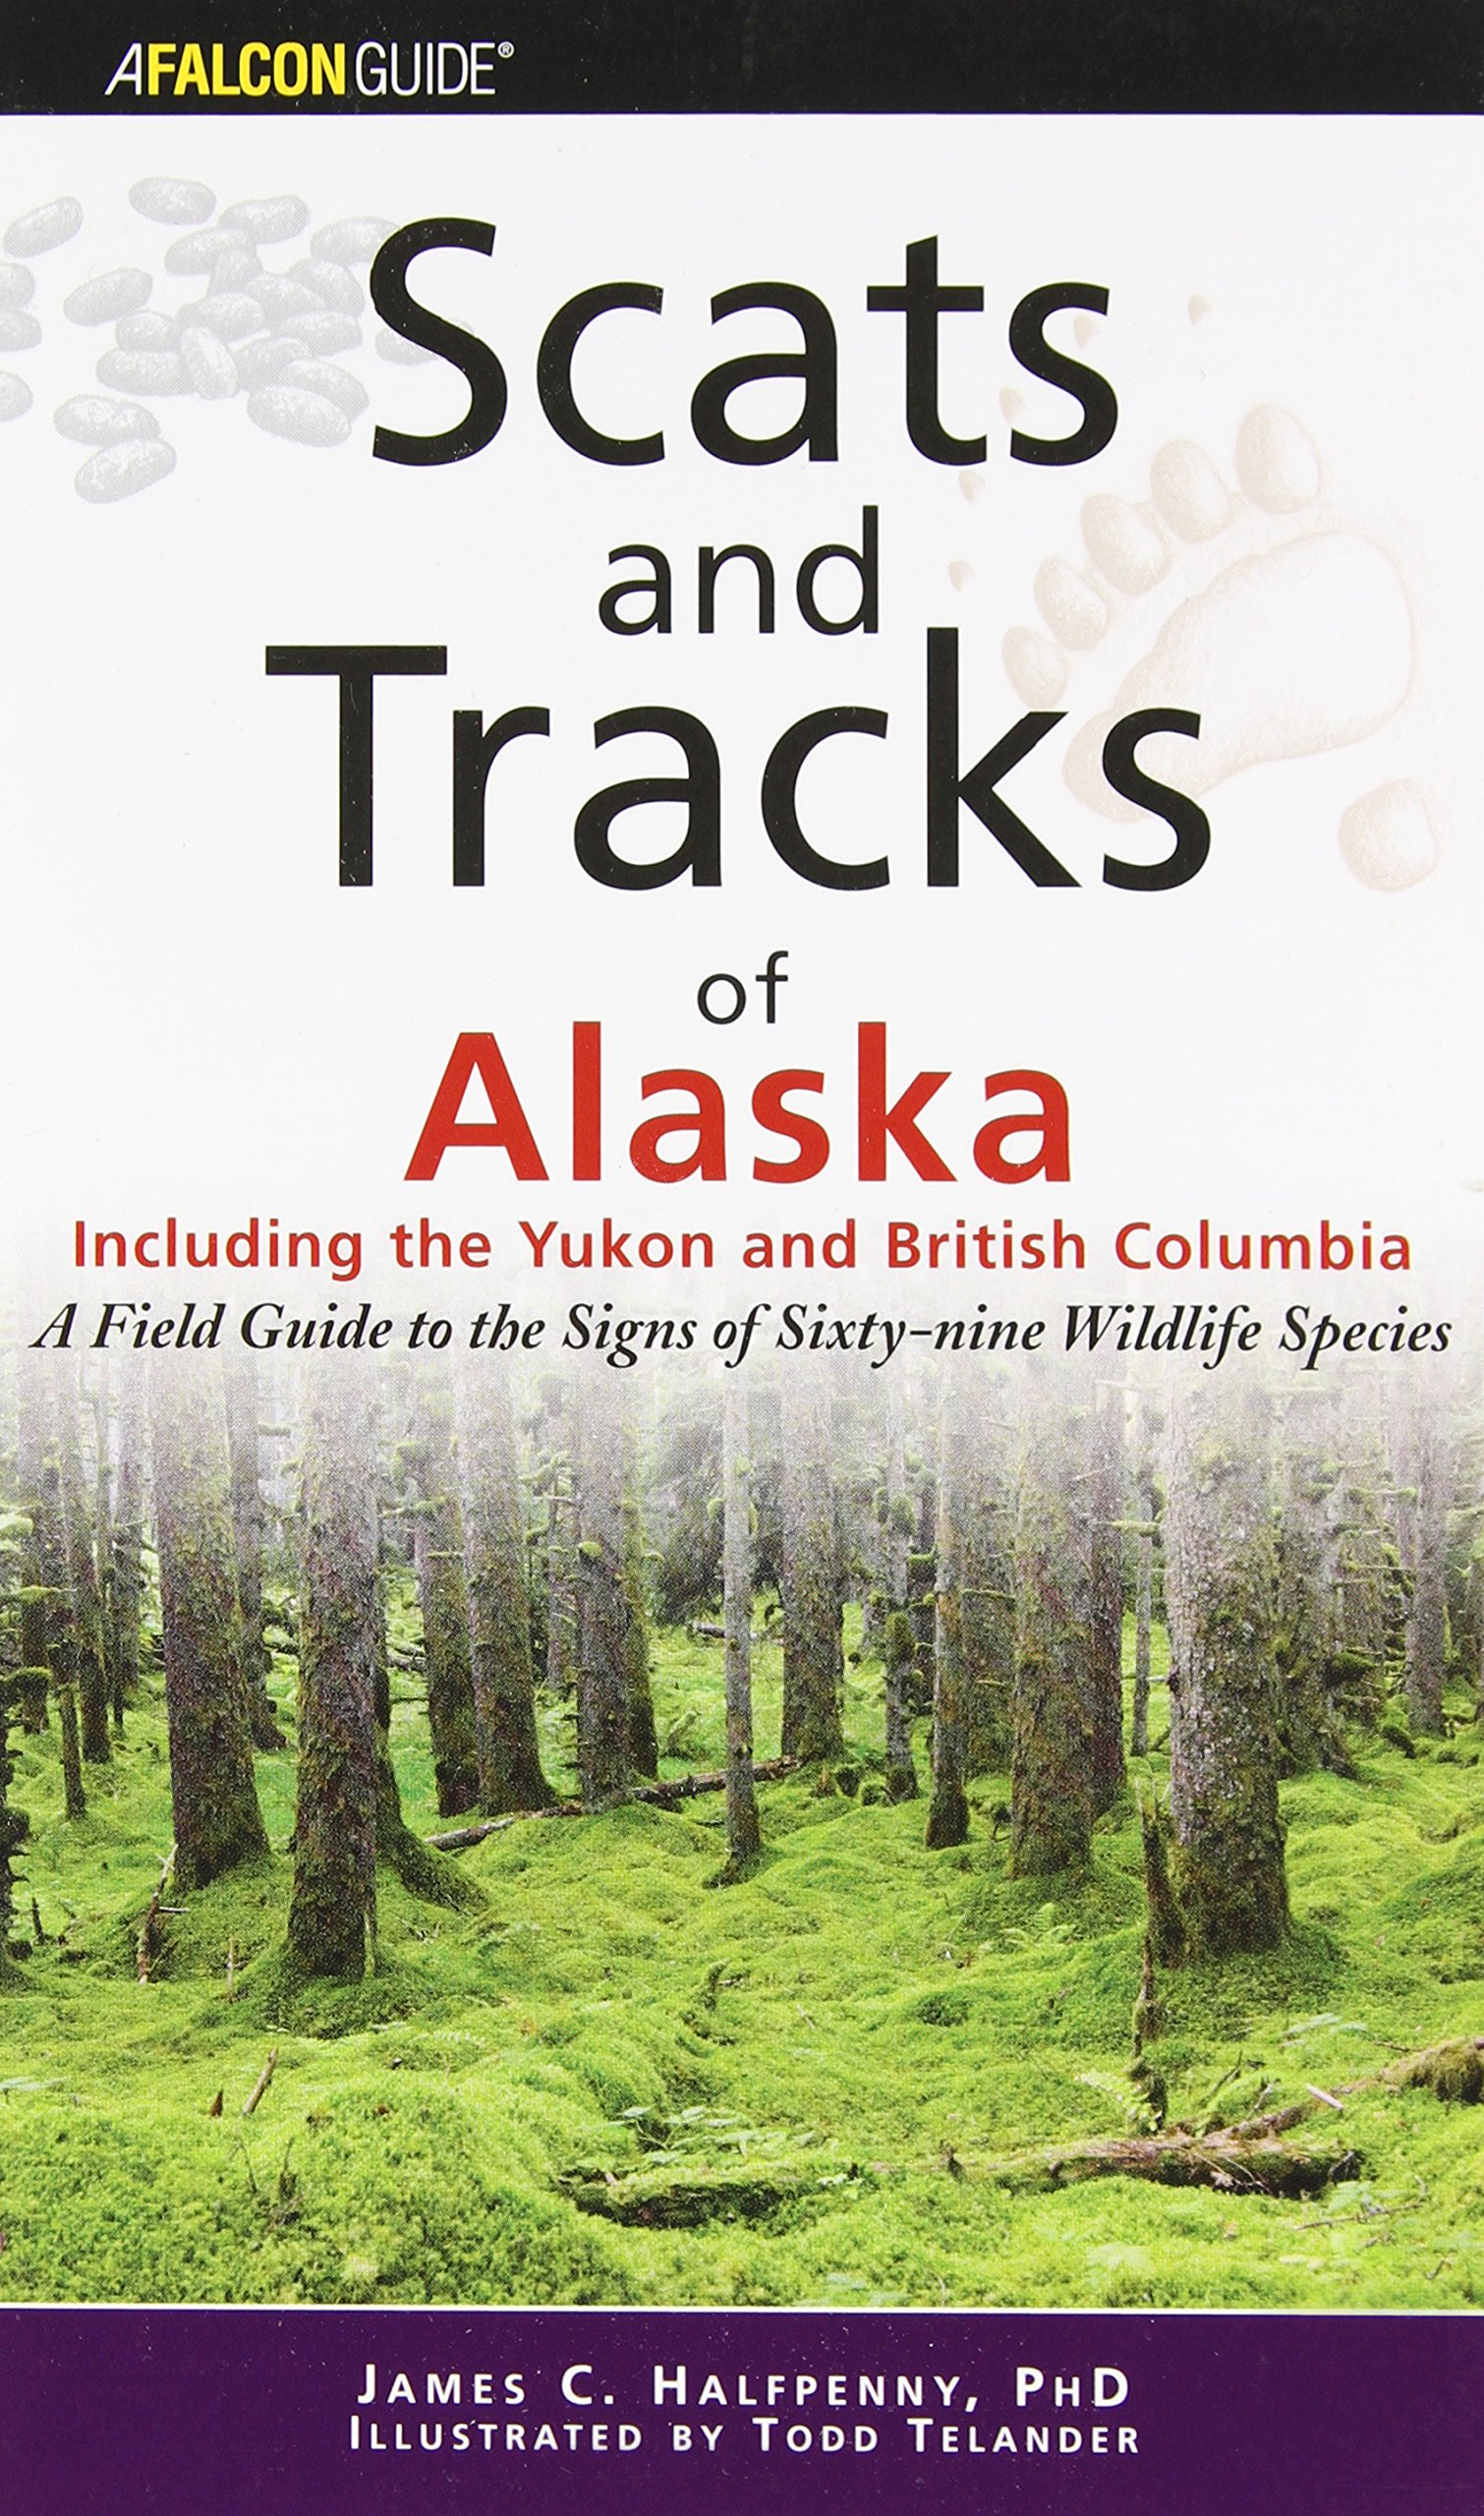 Scats and Tracks of Alaska Including the Yukon and British Columbia: A Field Guide To The Signs Of Sixty-Nine Wildlife Species (Scats and Tracks Series) pdf